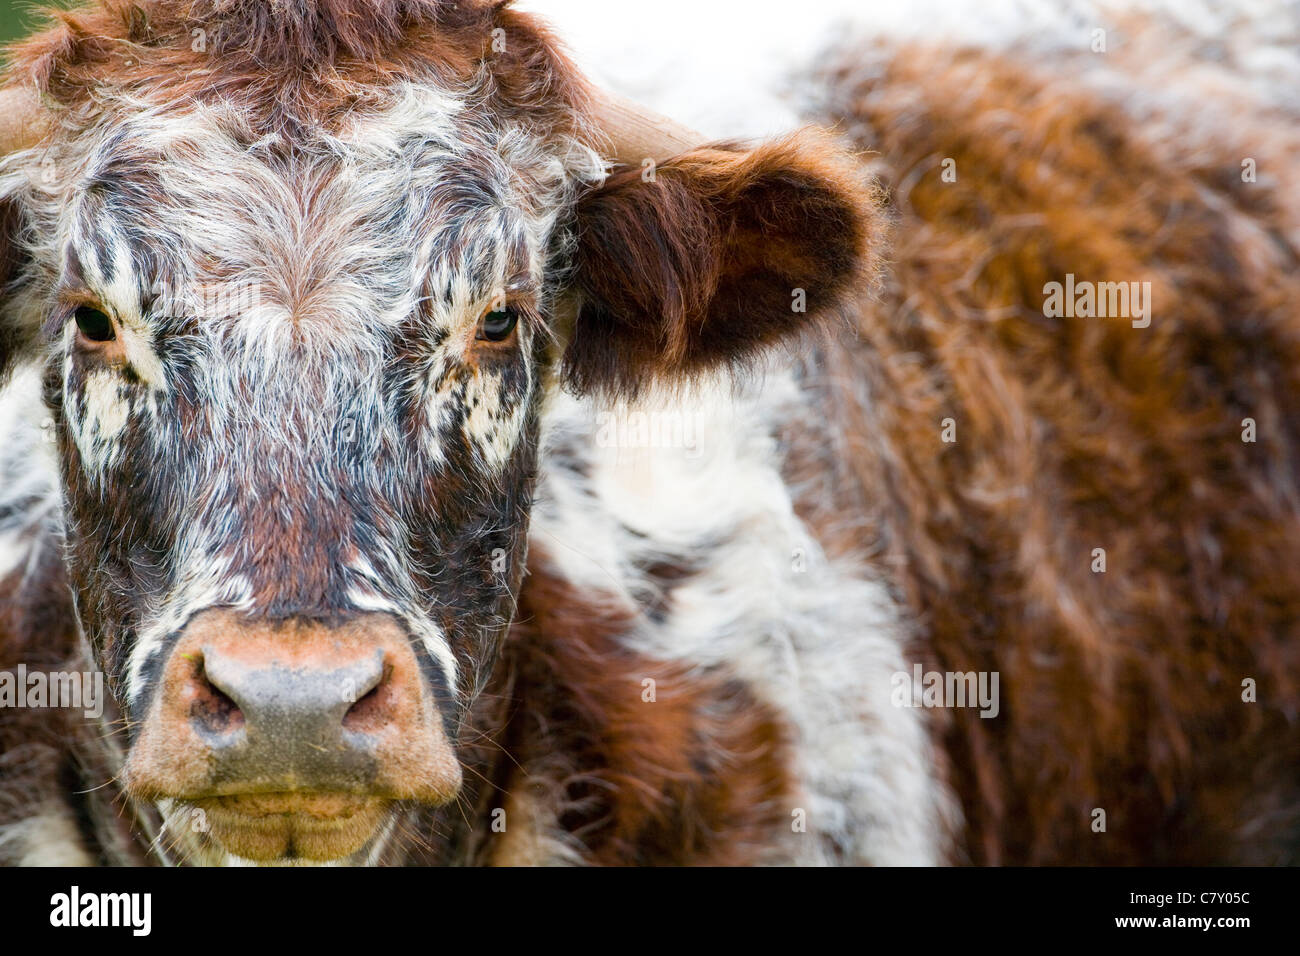 Long Horned Cow. - Stock Image